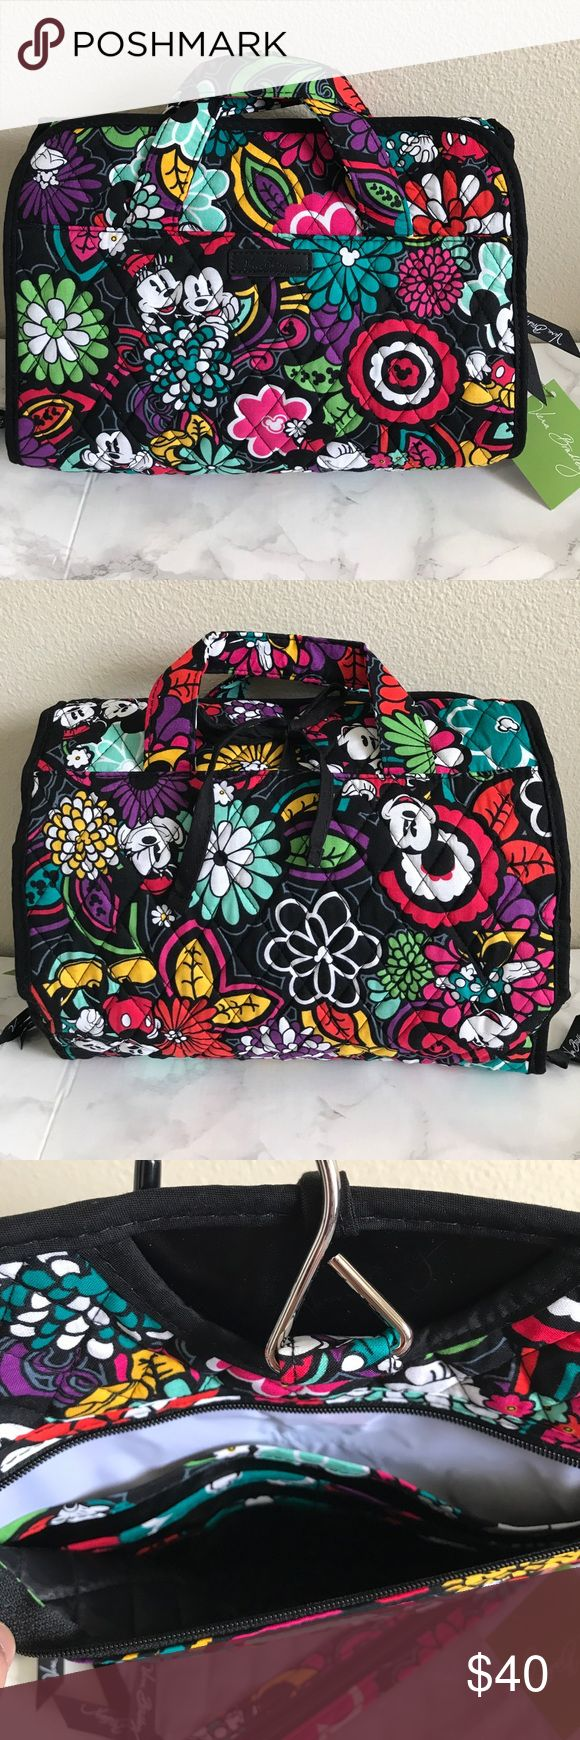 VERA BRADLEYHANGING COSMETIC ORGANIZER BAG NEW WITH TAGSColor: magical blooms. NO TRADES‼️PRICE IS FIRM‼️ READY TO SHIP Vera Bradley Bags Cosmetic Bags & Cases